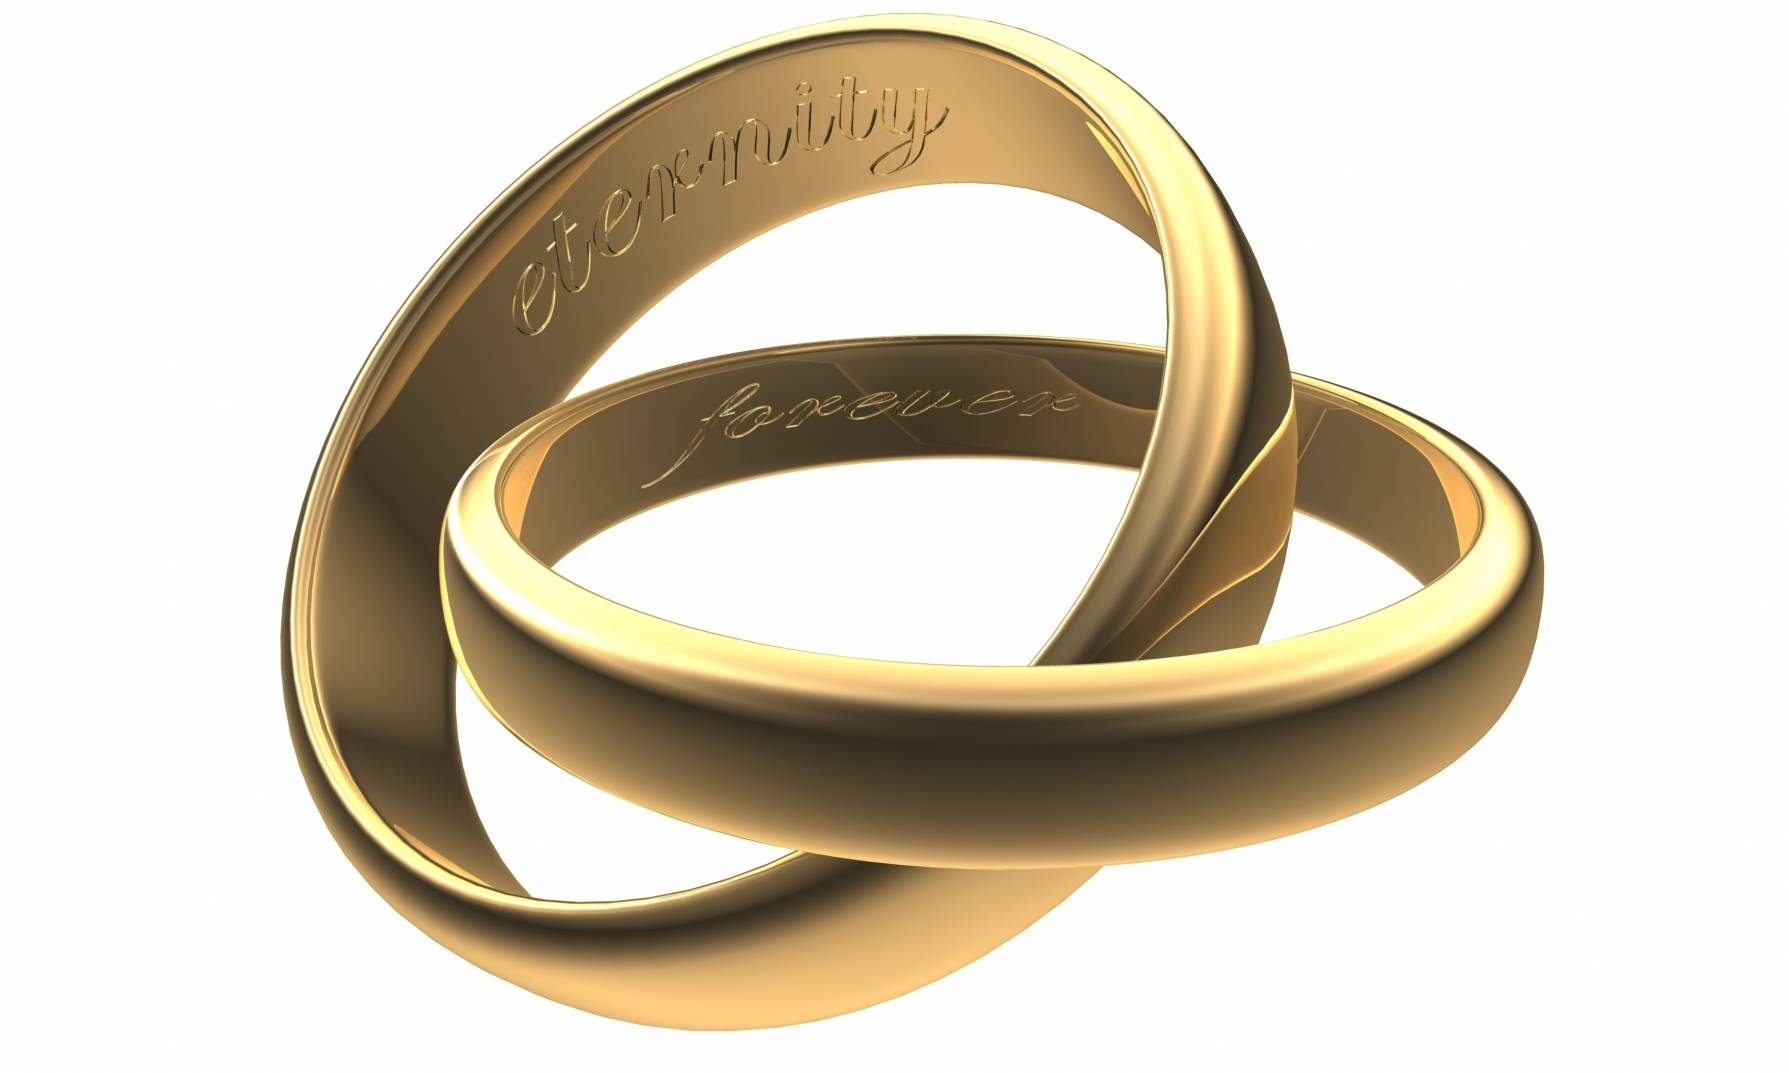 Engraved Wedding Bands | Wedding Band Engraving Within Newest Engraving Anniversary Rings (Gallery 2 of 25)